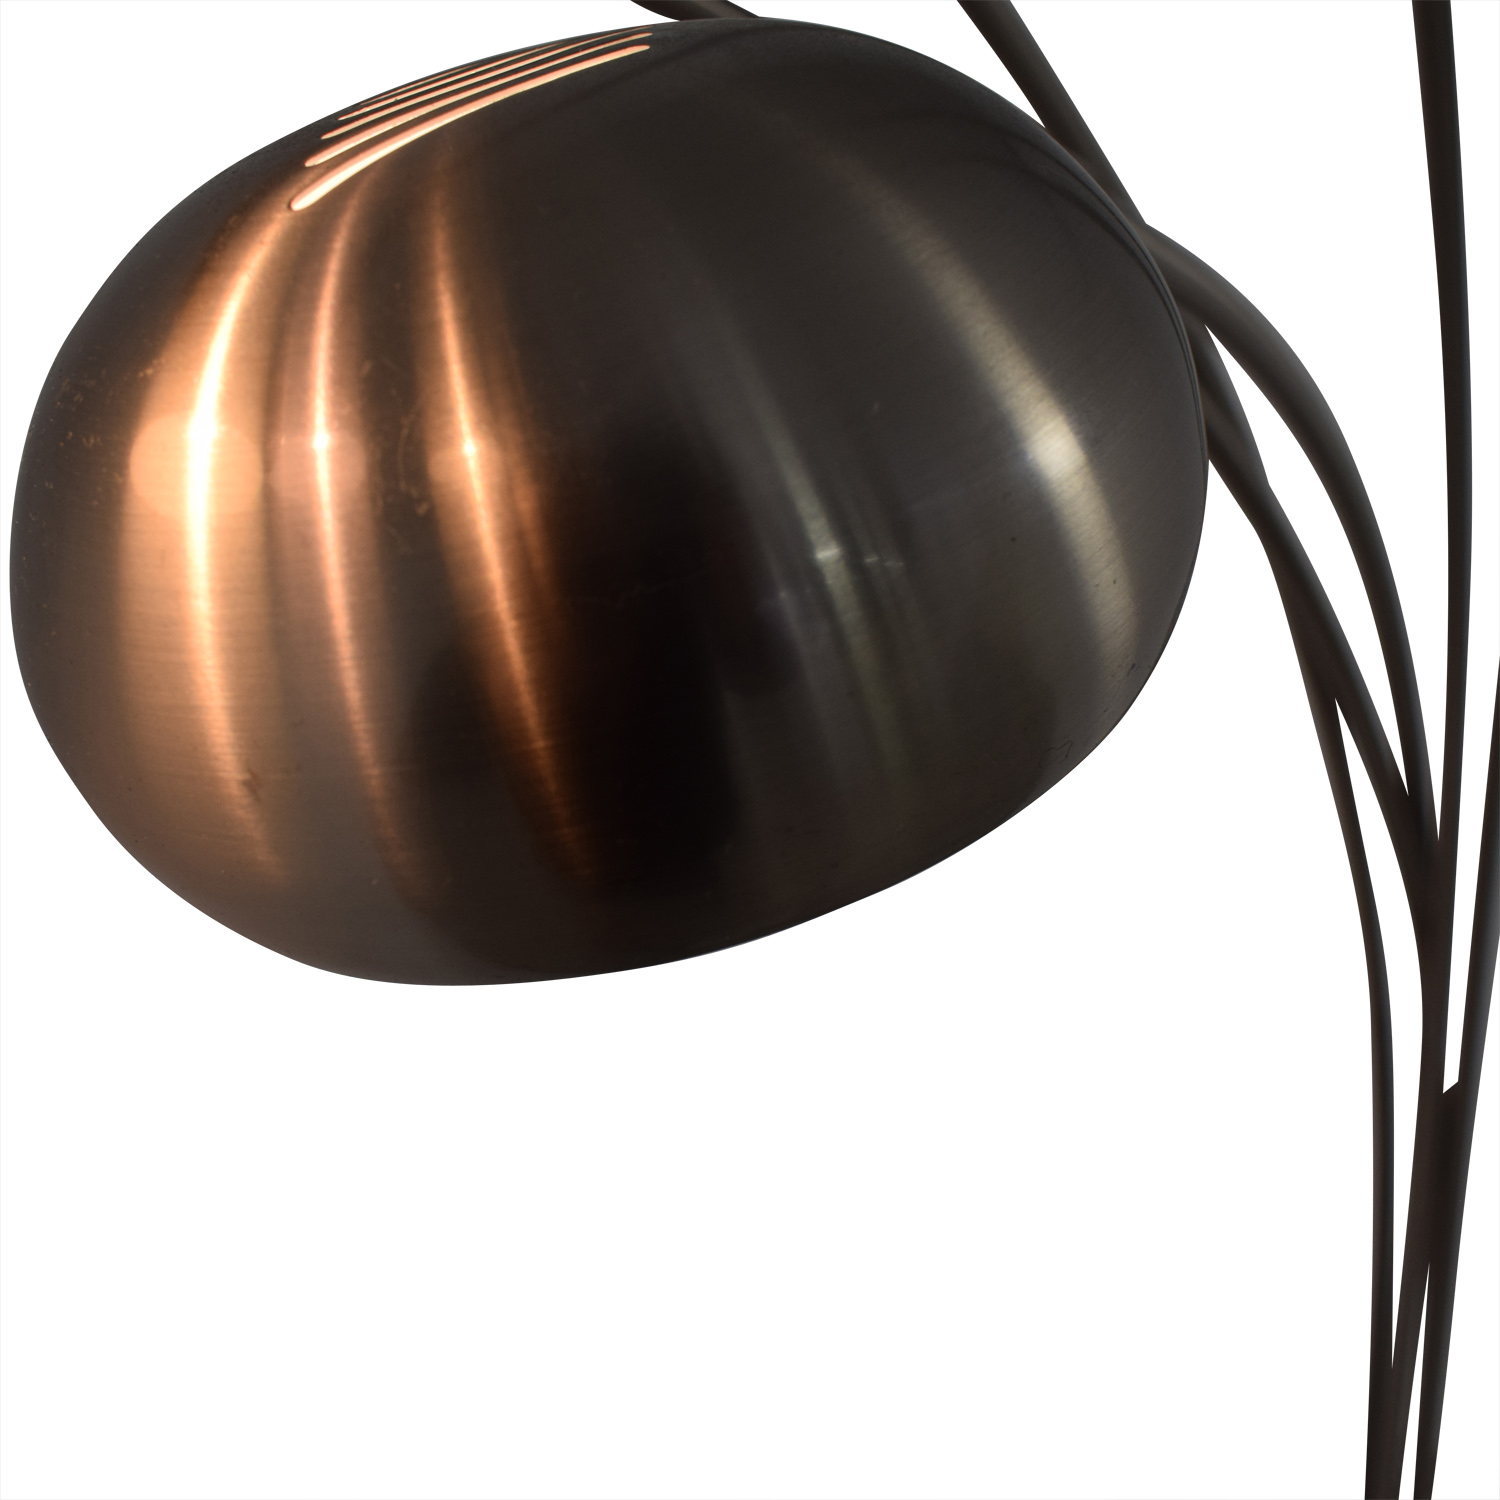 Five-Light Mushroom Arc Lamp for sale